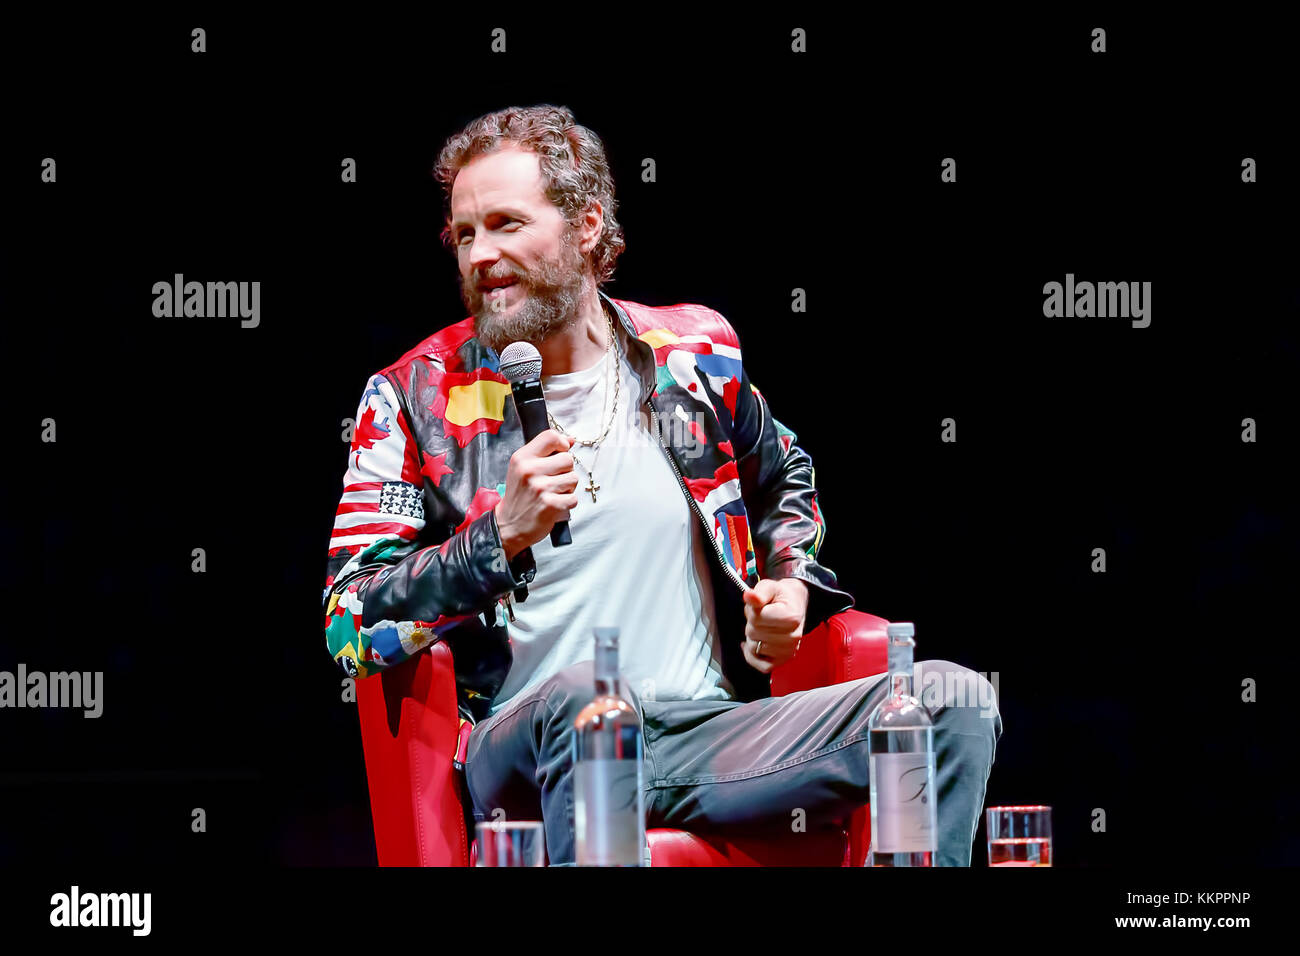 Rome, Italy - October 16, 2016. Italian singer Jovanotti (Lorenzo Cherubini) is interviewed during the meeting with - Stock Image